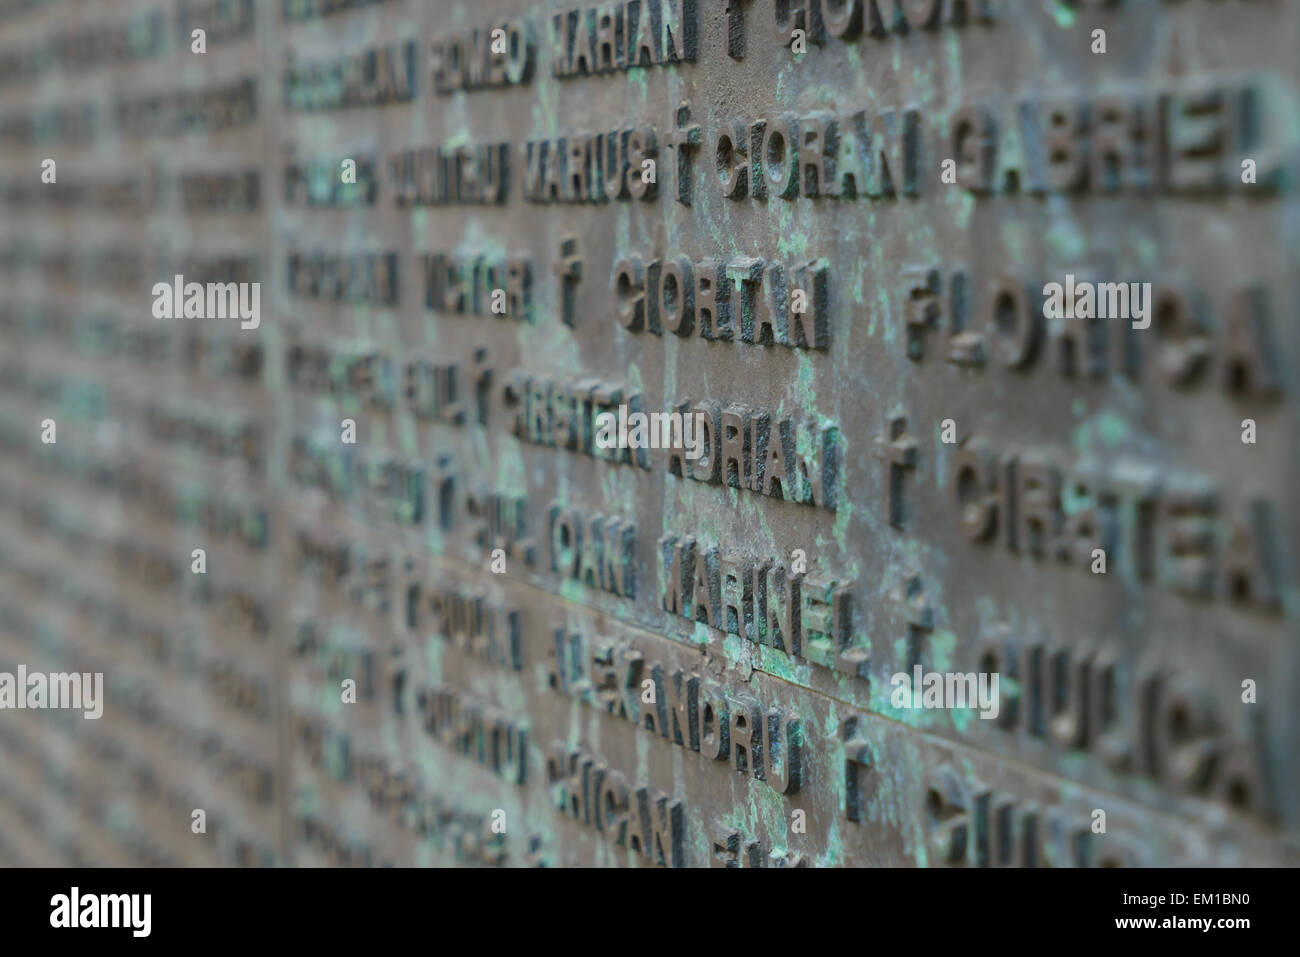 Details of the monument in Revolution Square with  names of people who died in the revolution in Bucharest, Romania. Stock Photo